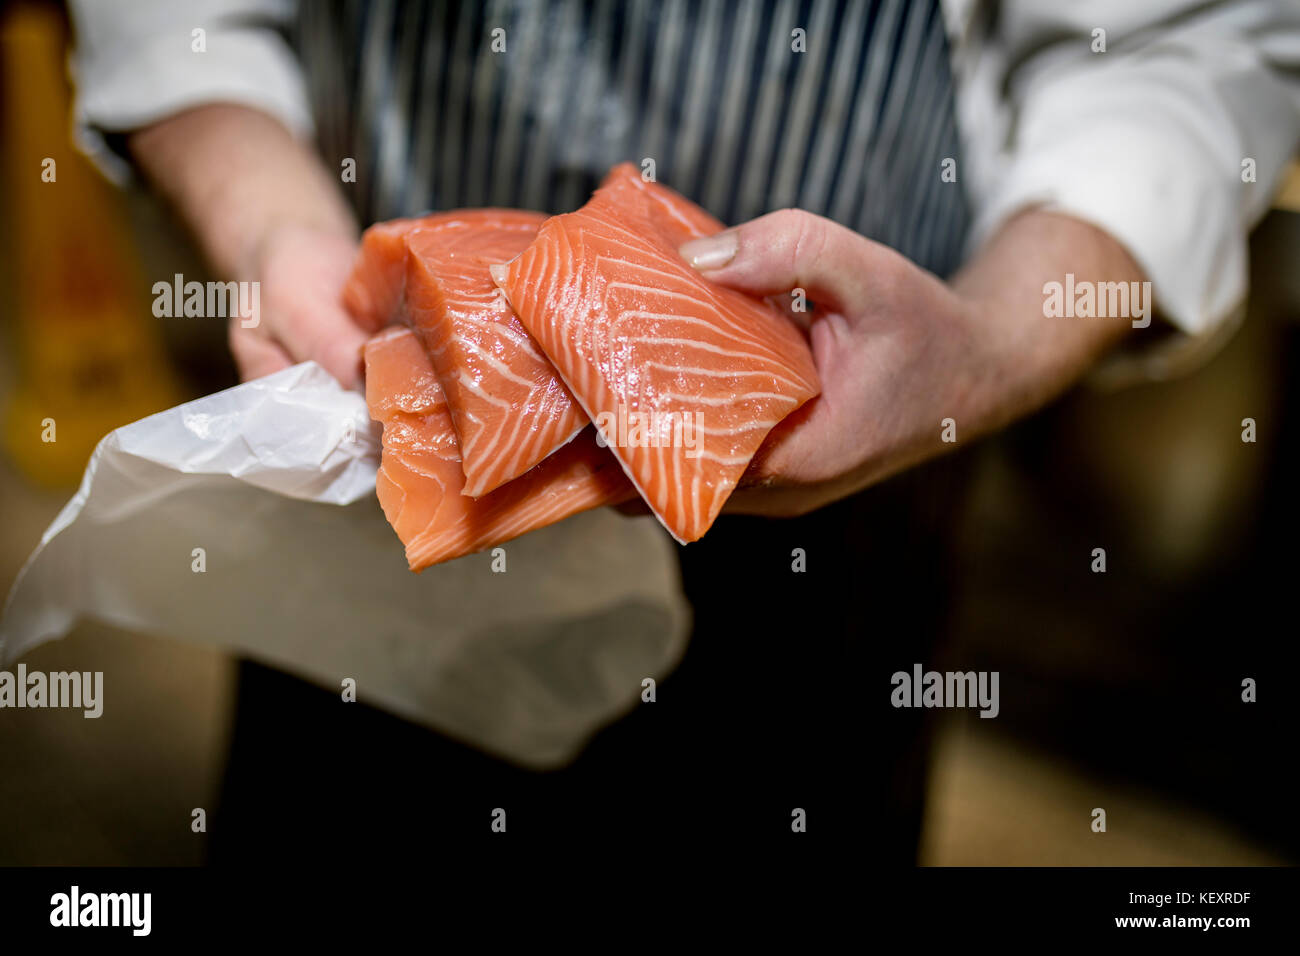 Close up of a fish monger's hands holding three fillets of fresh filleted salmon on a market stall in Yorkshire, - Stock Image